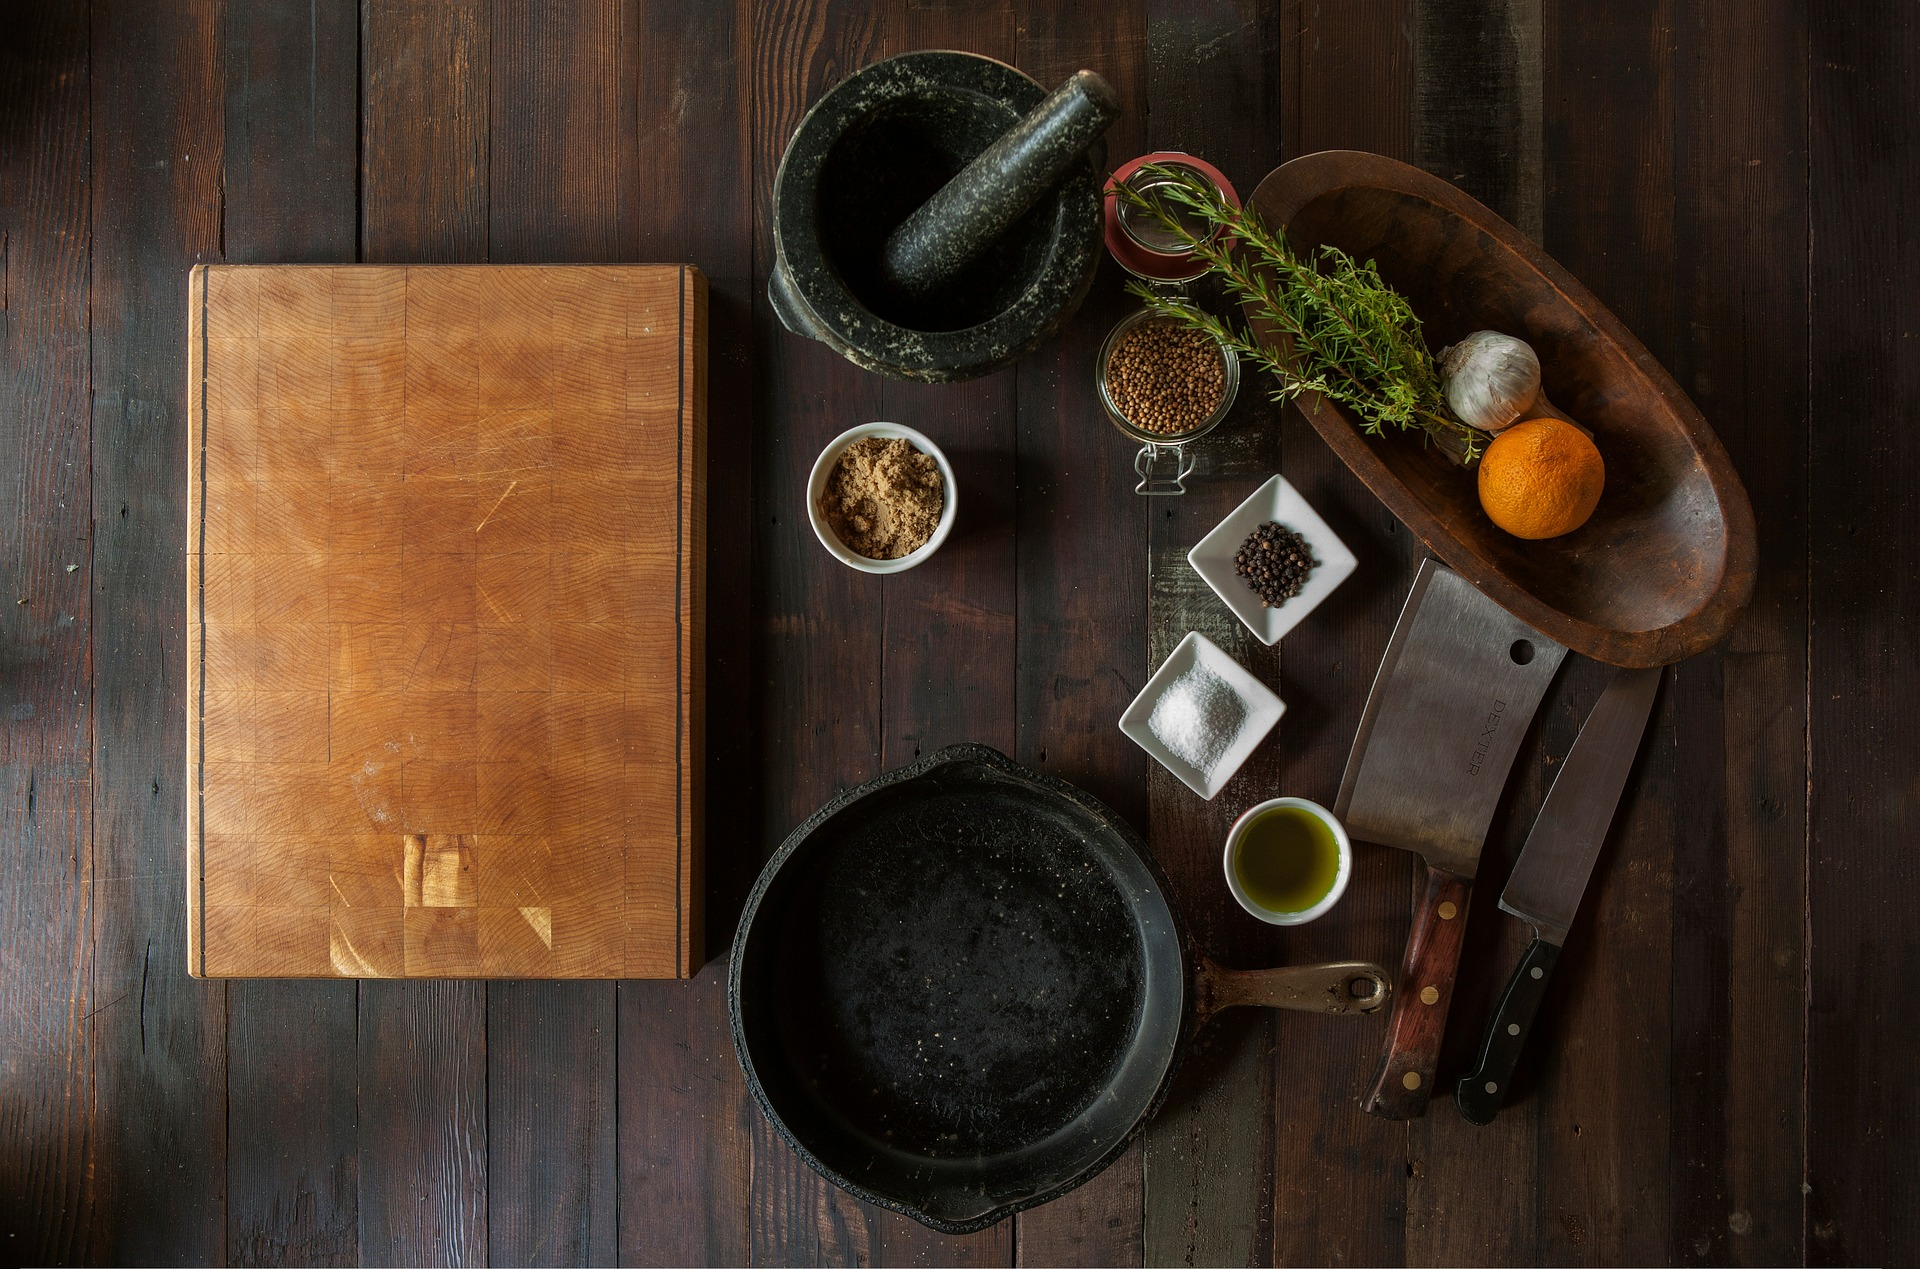 Best Ways To Cook Without Starting A Fire